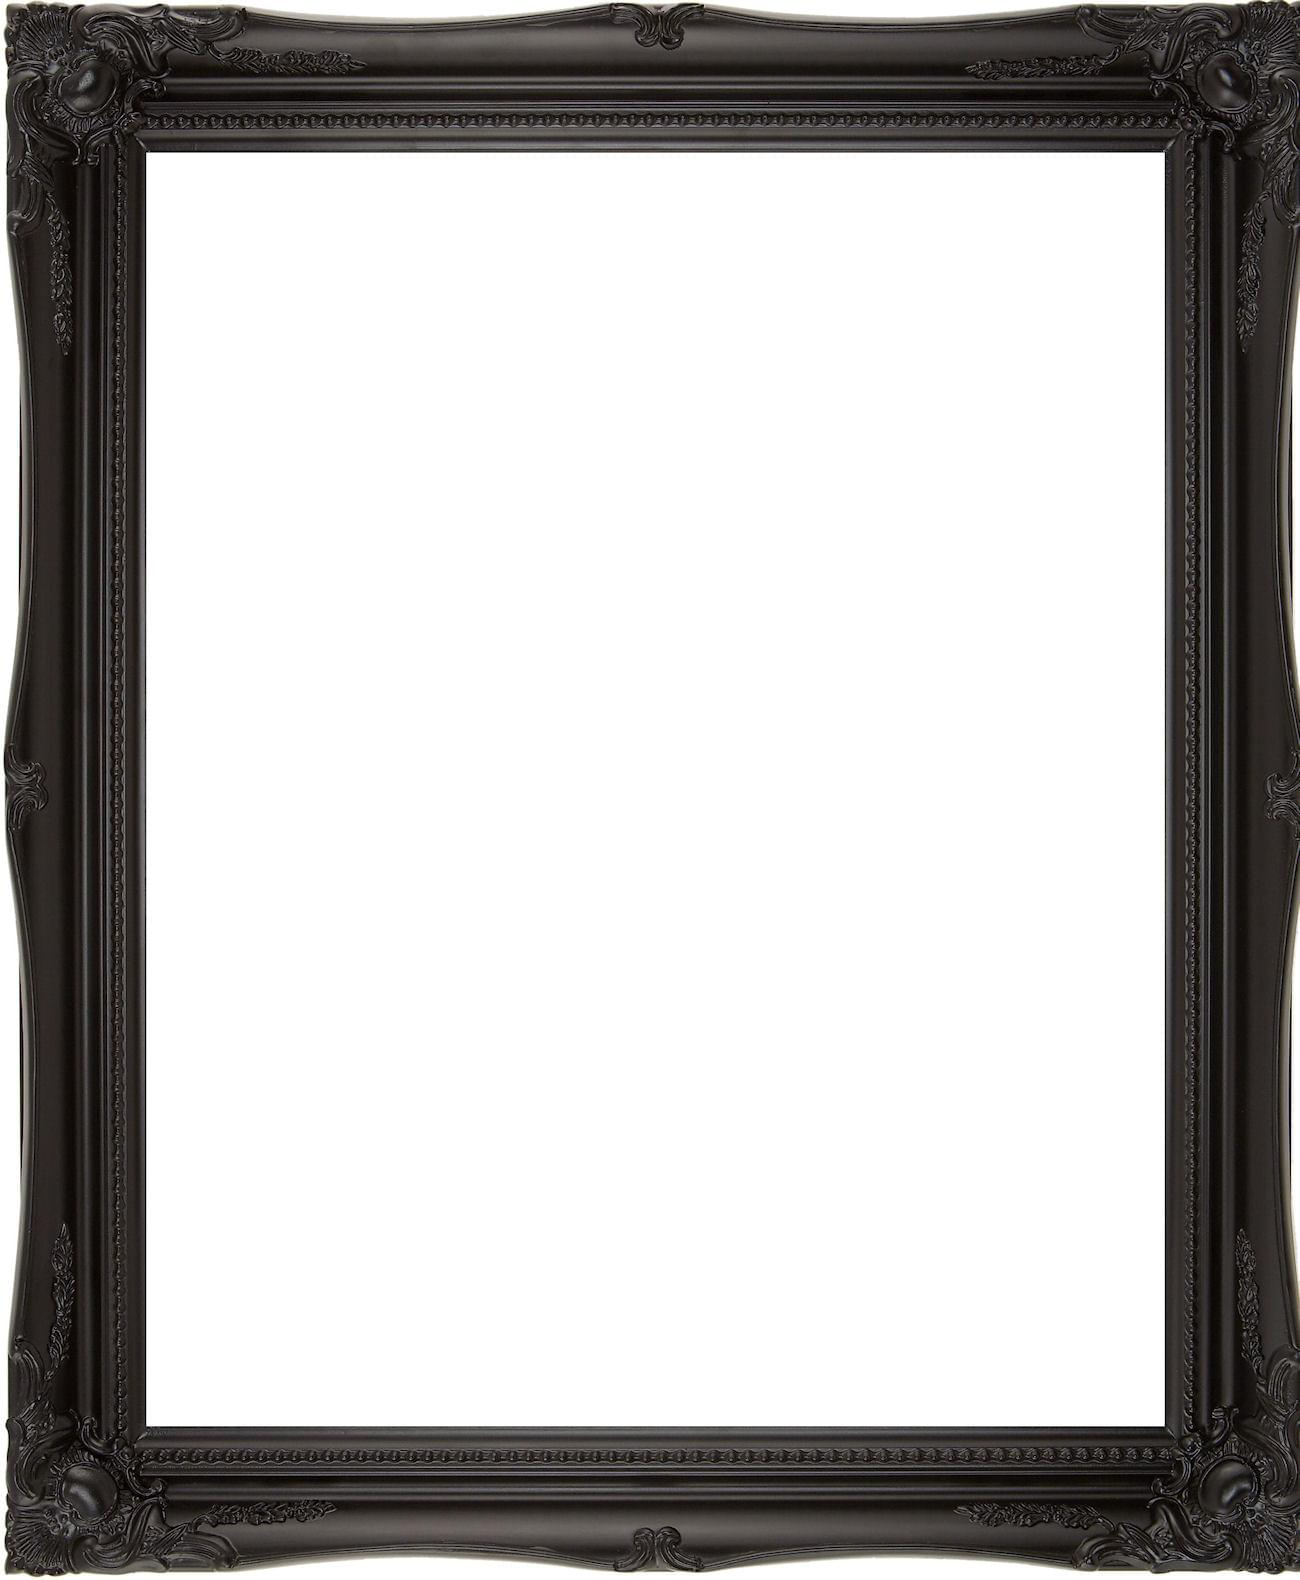 Frame vintage frame vector element r for Large a frame